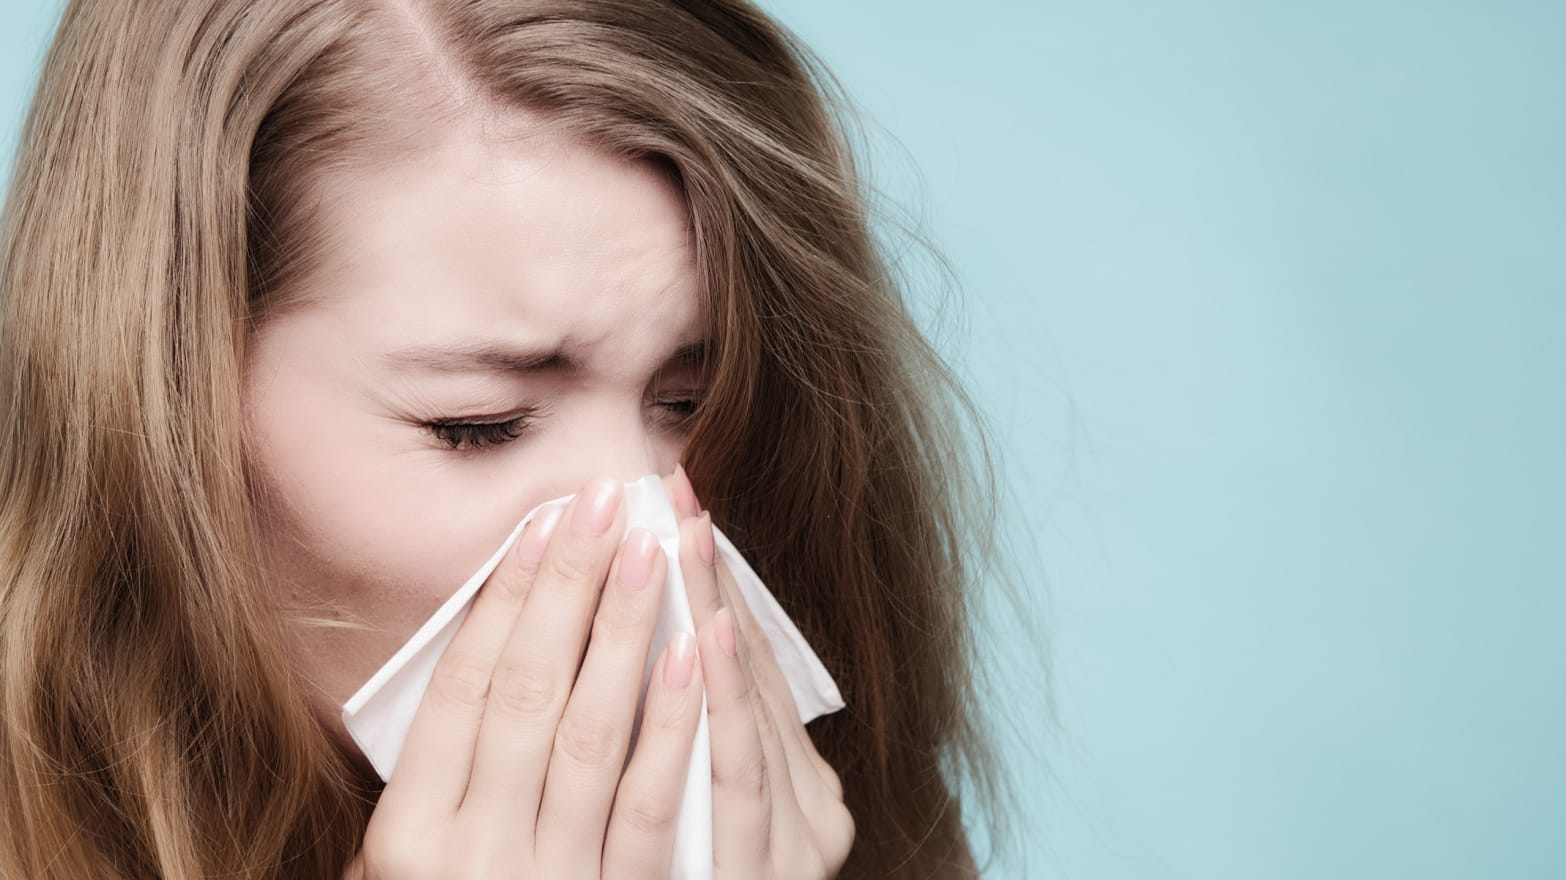 Do I Have a Cold or Allergies? 6 Telltale Signs